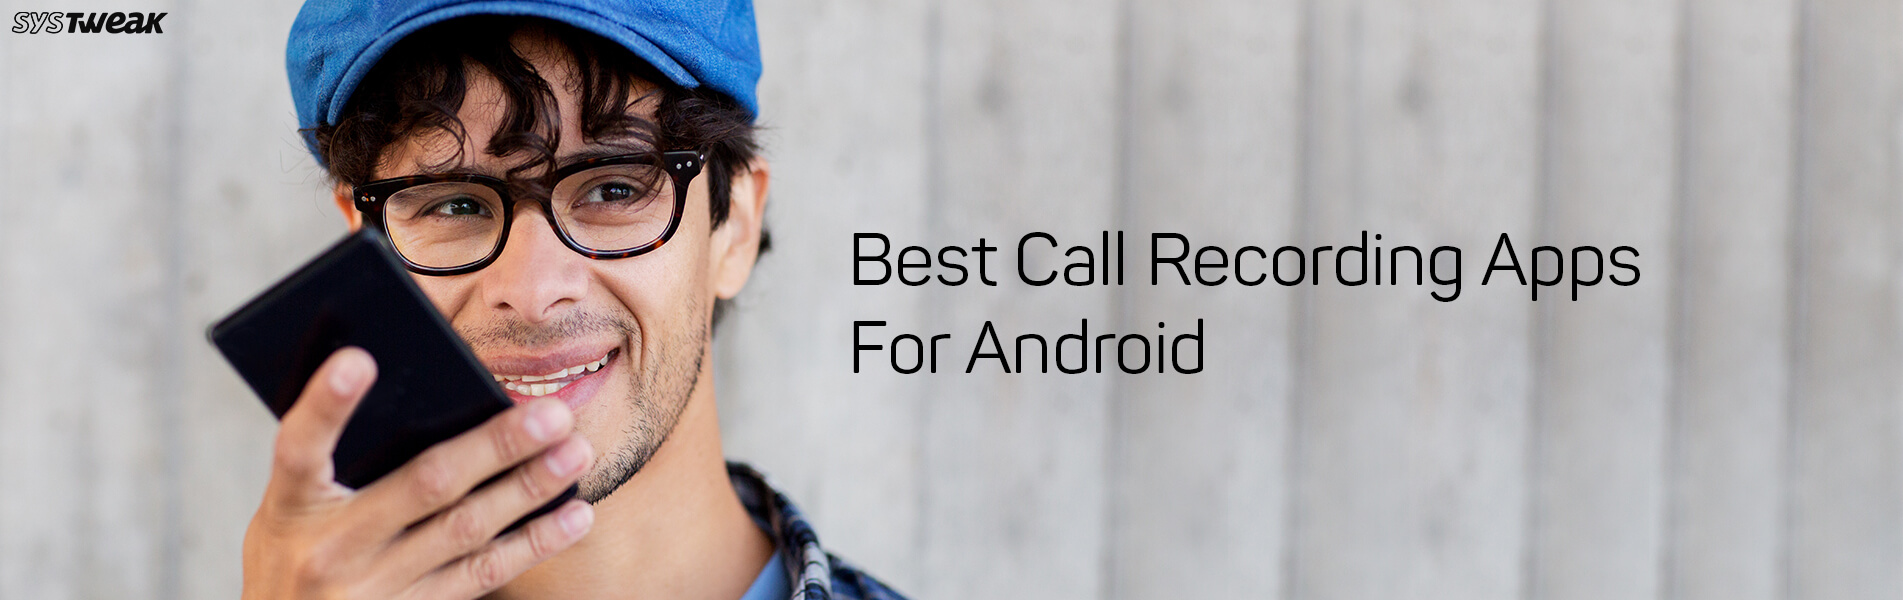 12 Best Call Recording Apps For Android 2018